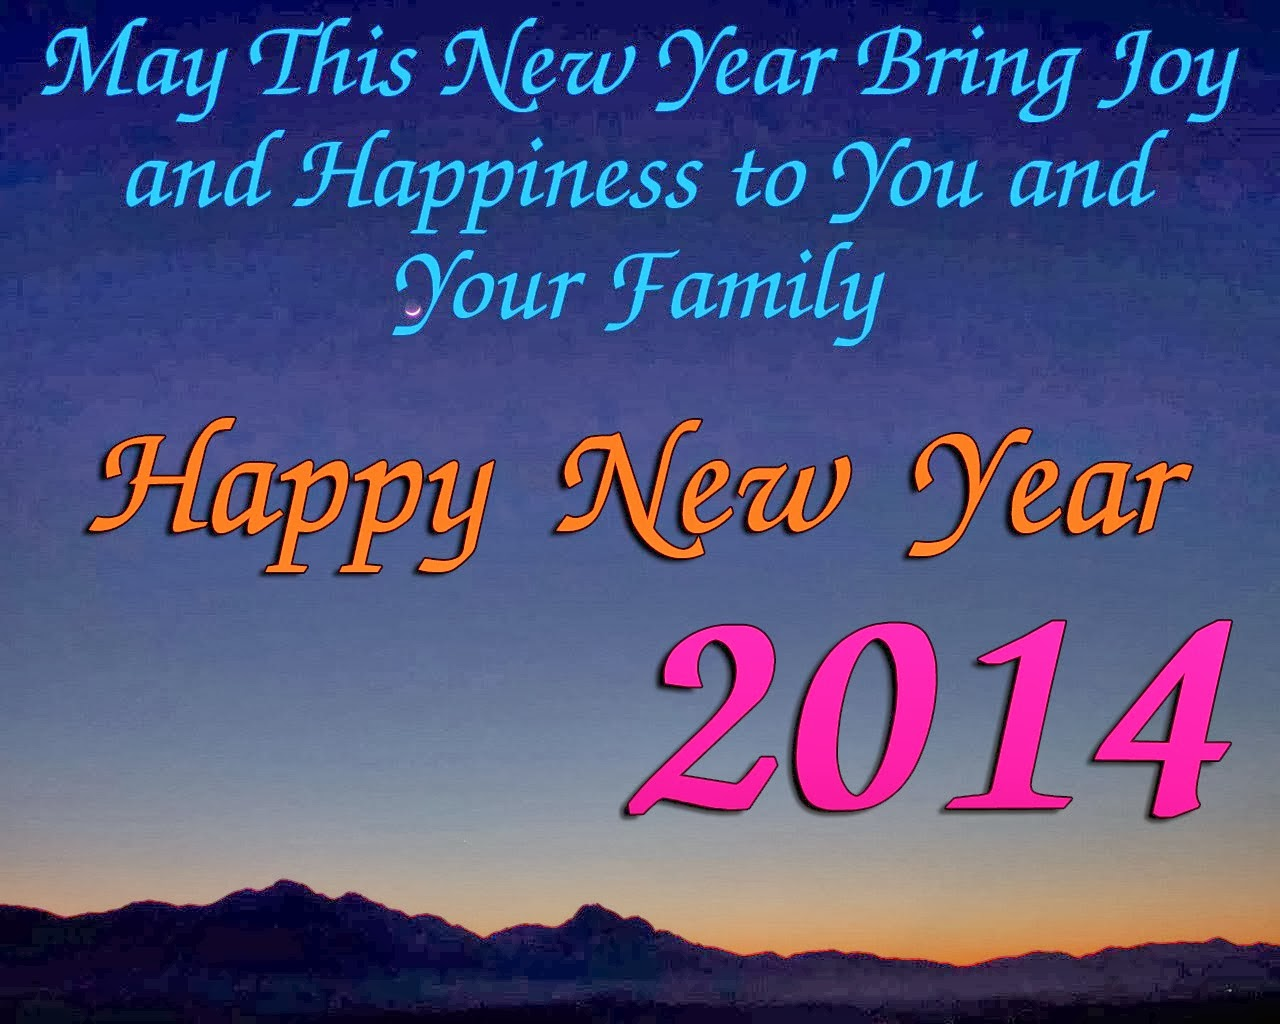 Happy New Year Wallpaper With Quotes: Happy New Year Wallpapers With Quotes